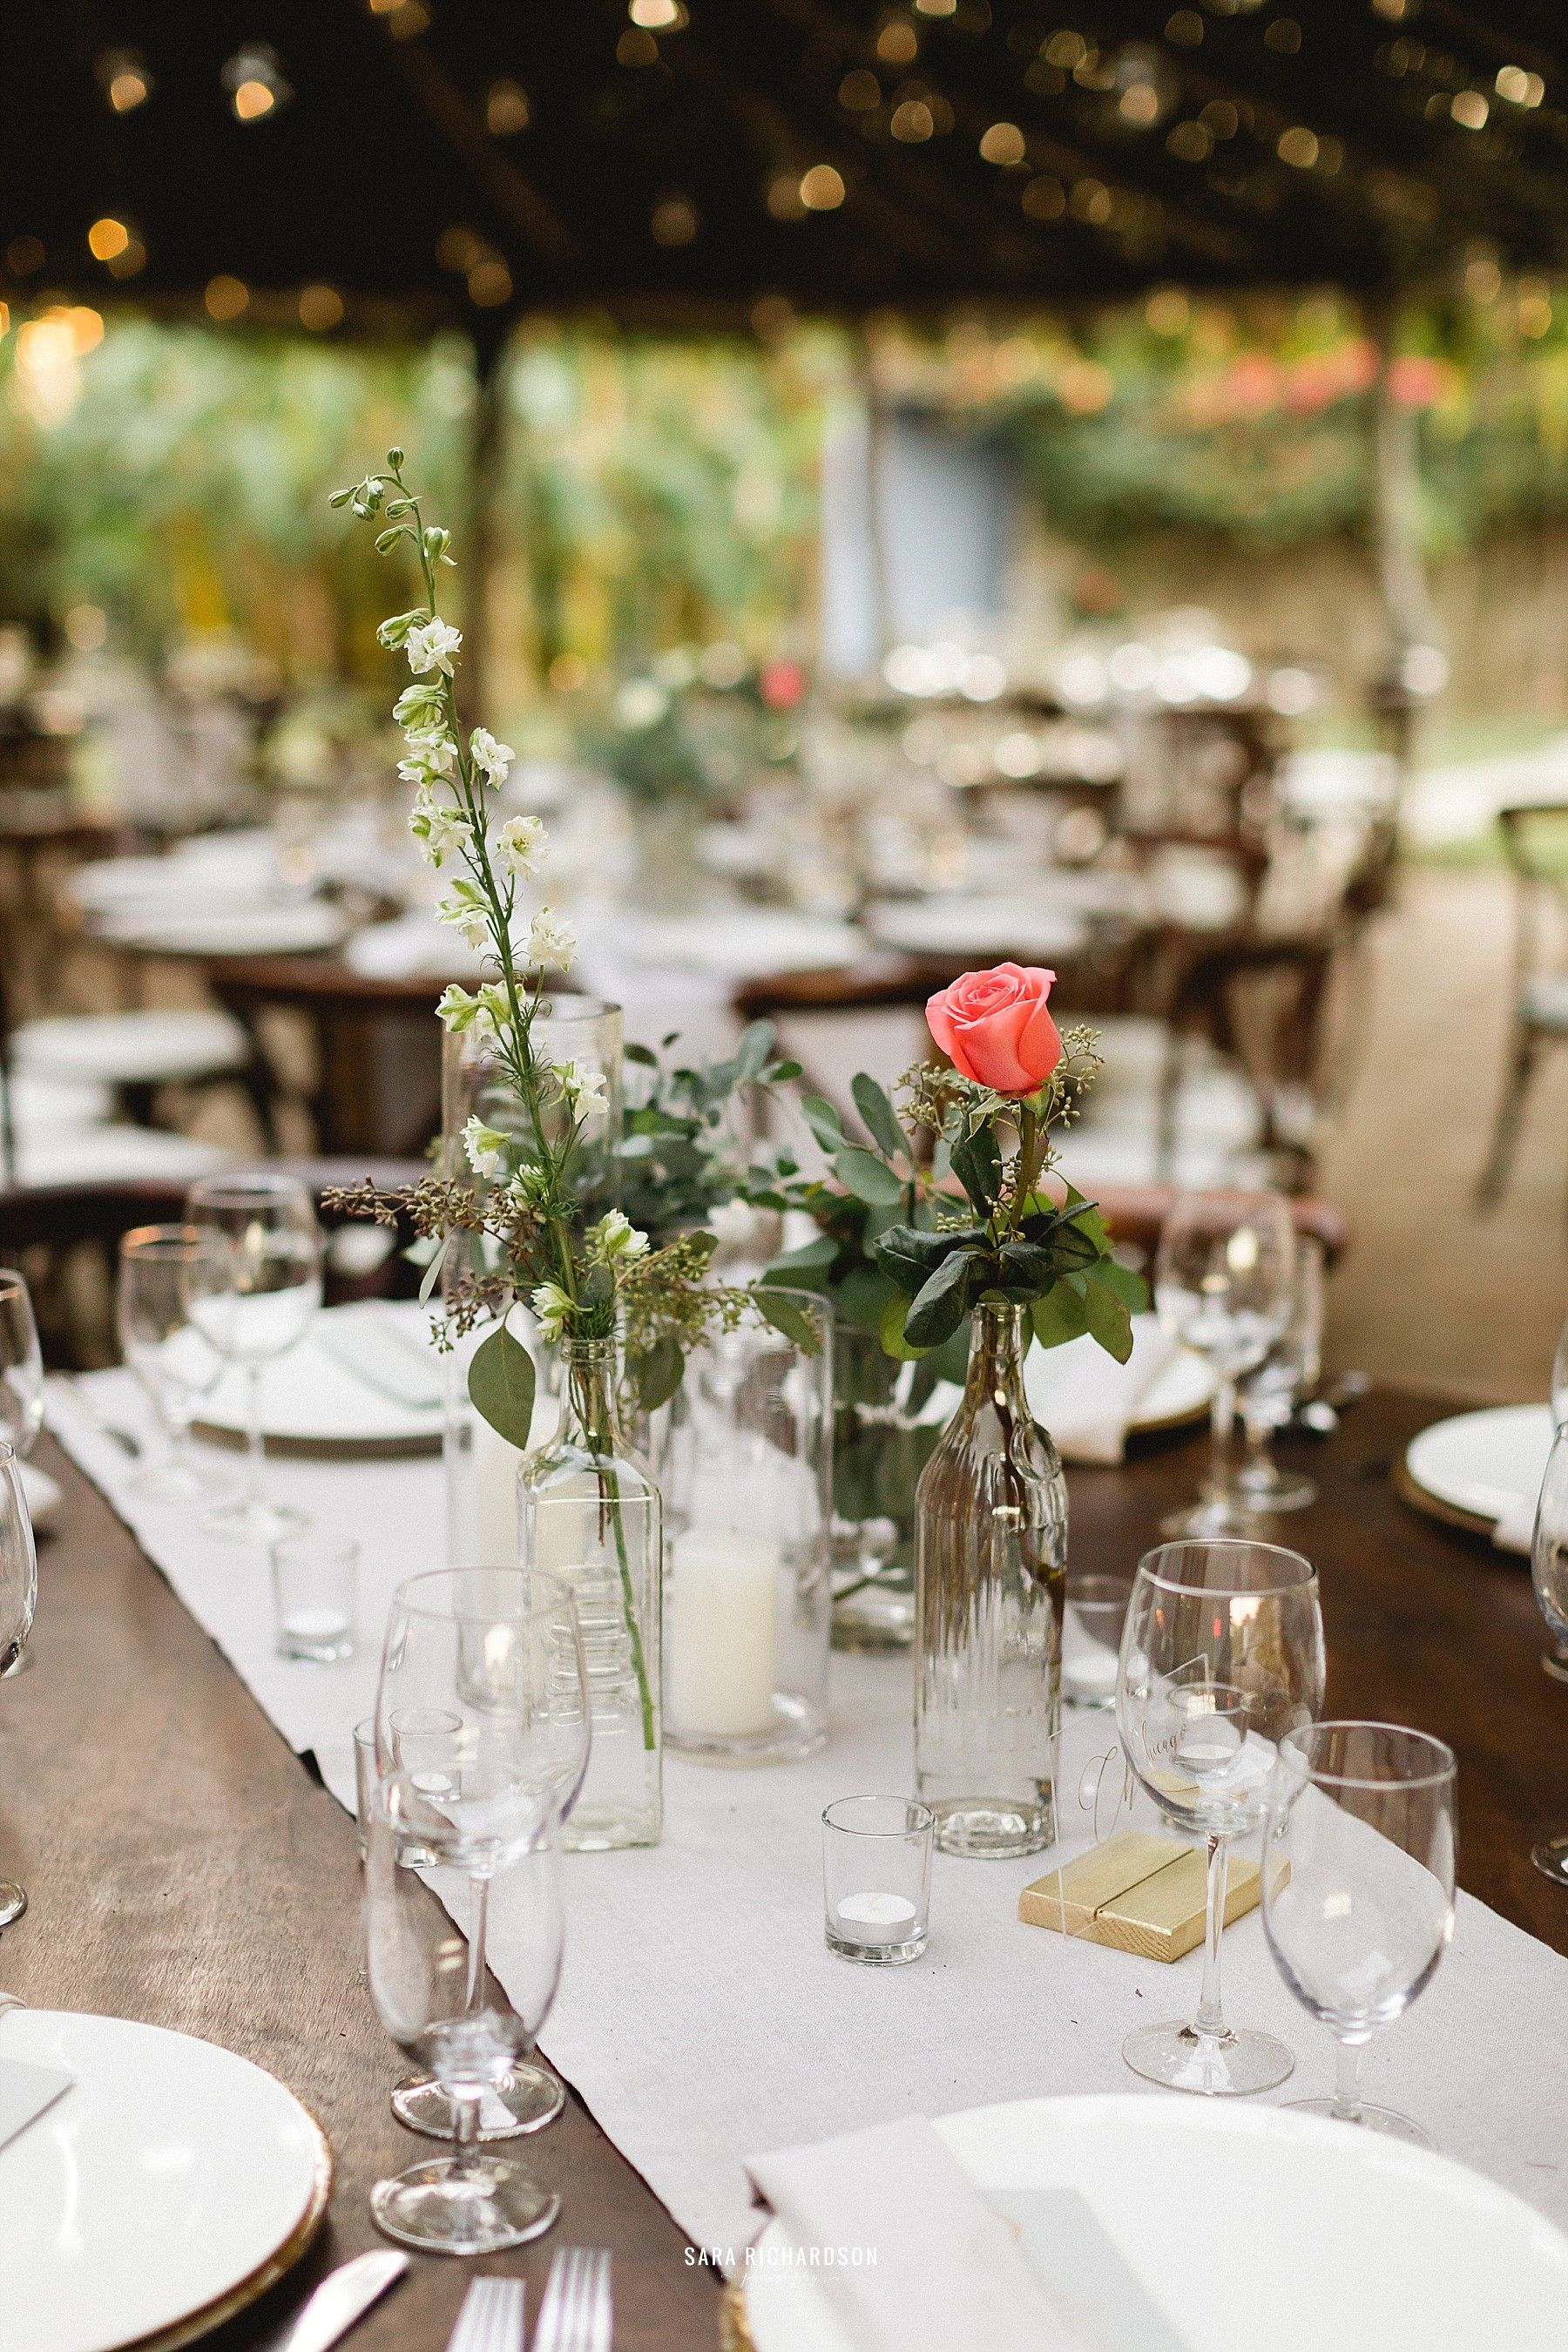 Table setting at Los Tamarindos in Cabo San Lucas, Mexico. Wedding Planning by Cabo Wedding Services